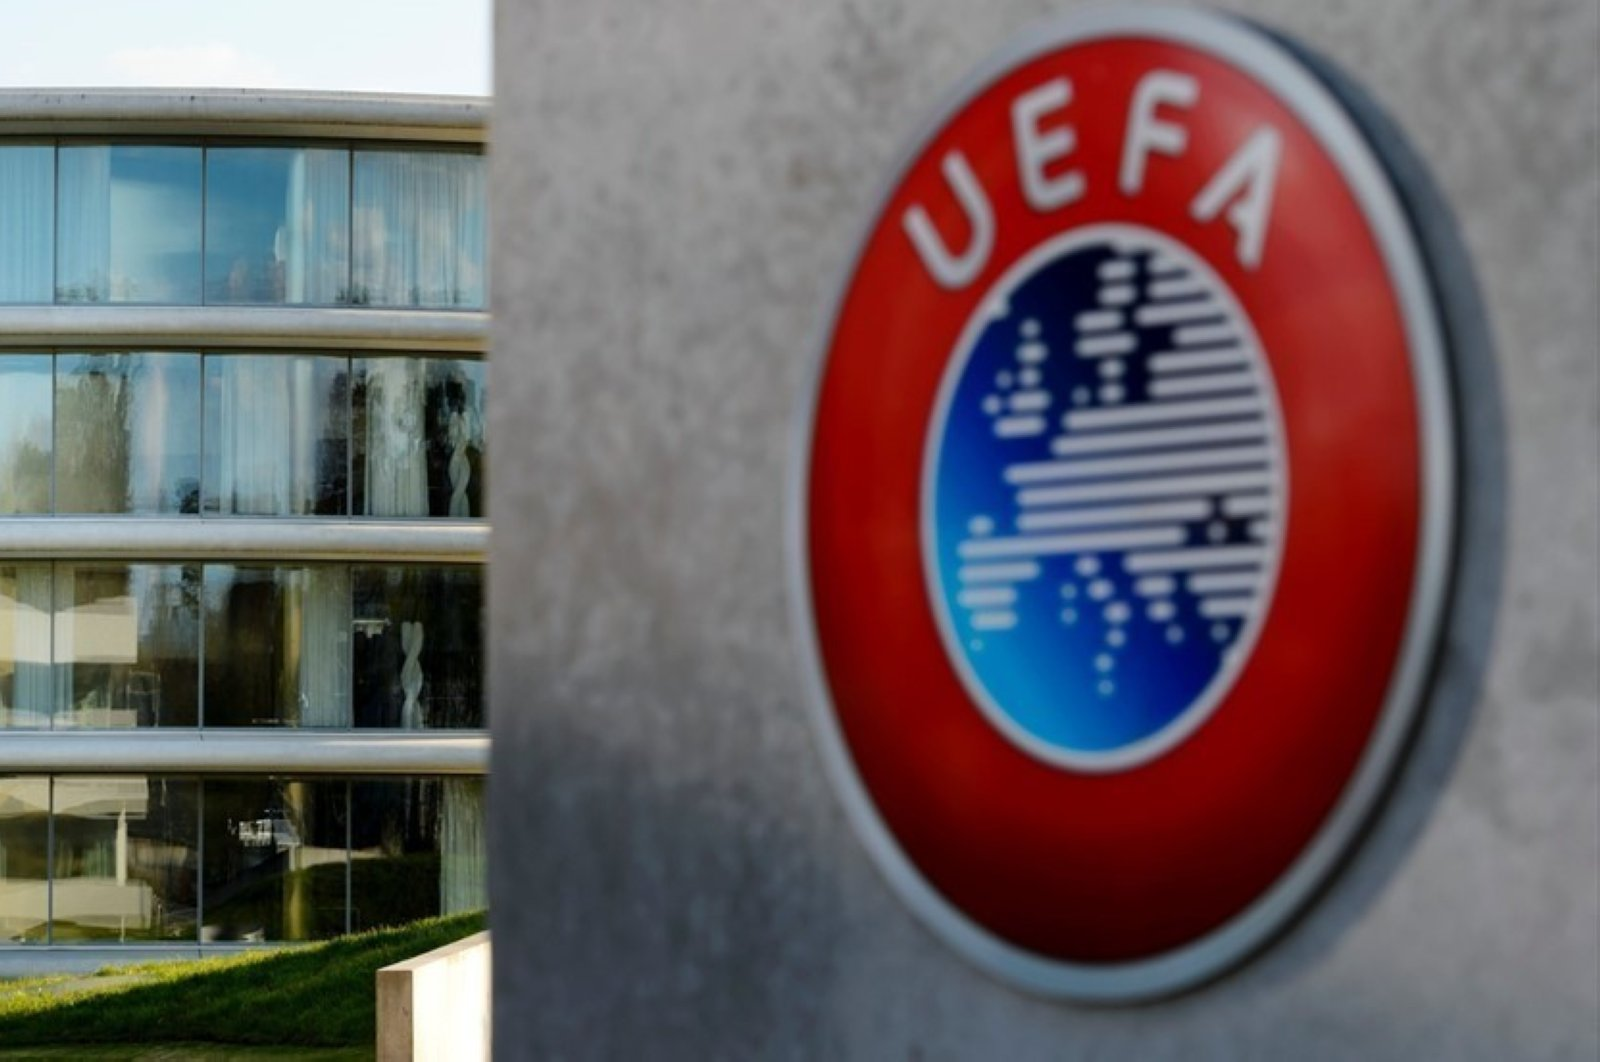 The UEFA logo at the soccer body's headquarters in Nyon, Switzerland. (AA Photo)